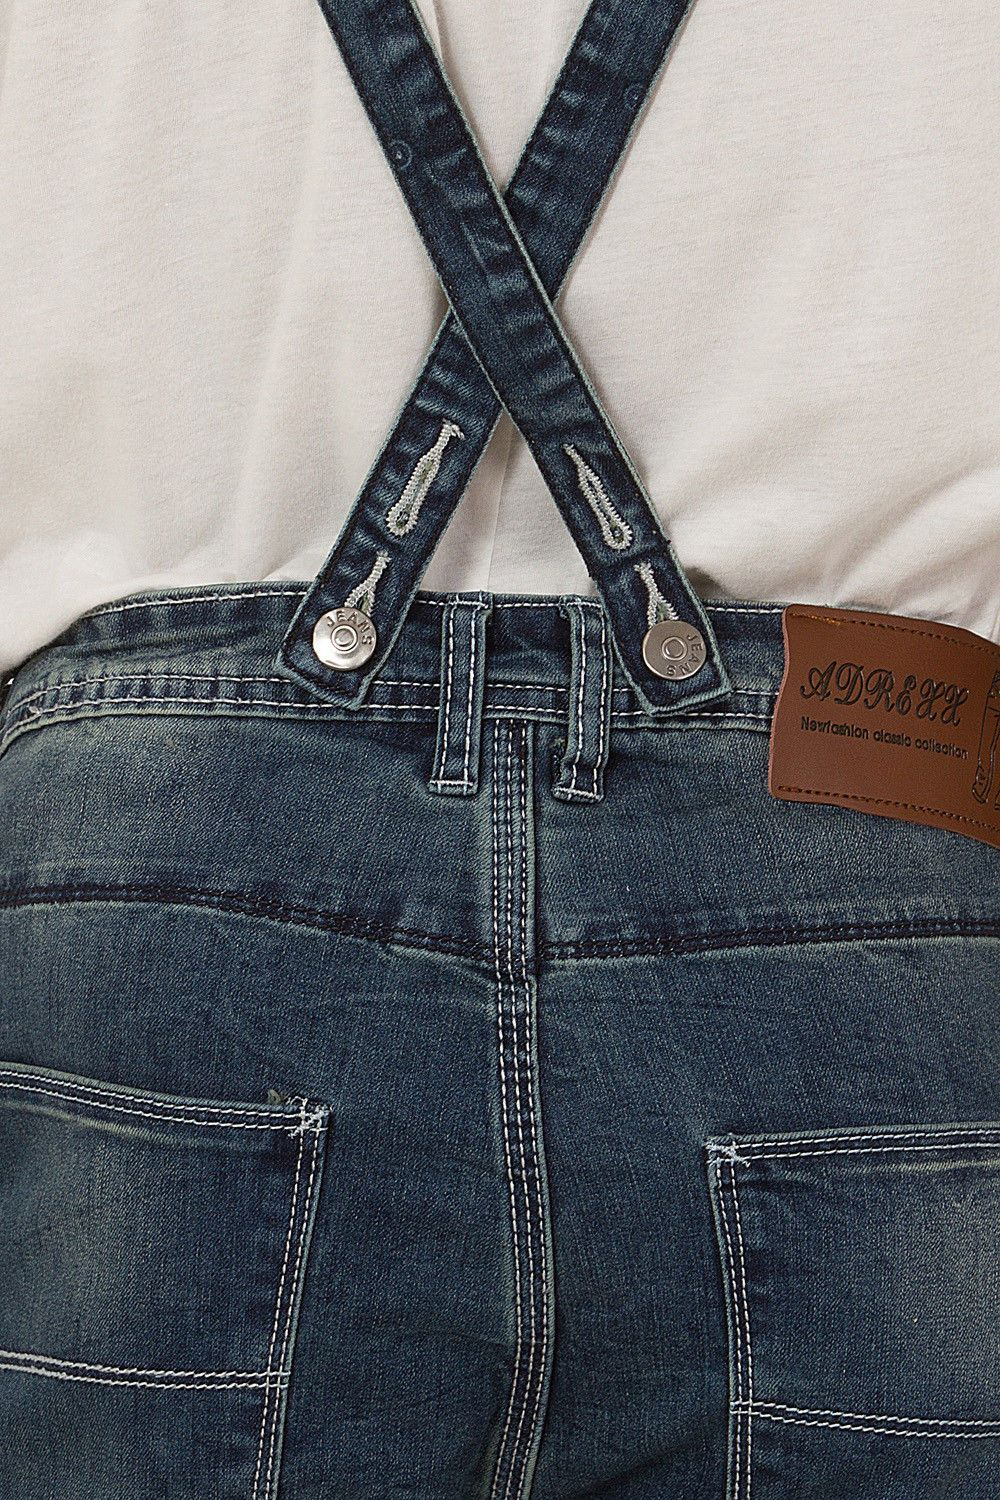 Close-up of strap fastening, back pockets and denim detailing from 'Guy' brand detachable bib dungaree shorts from Dungarees Online.